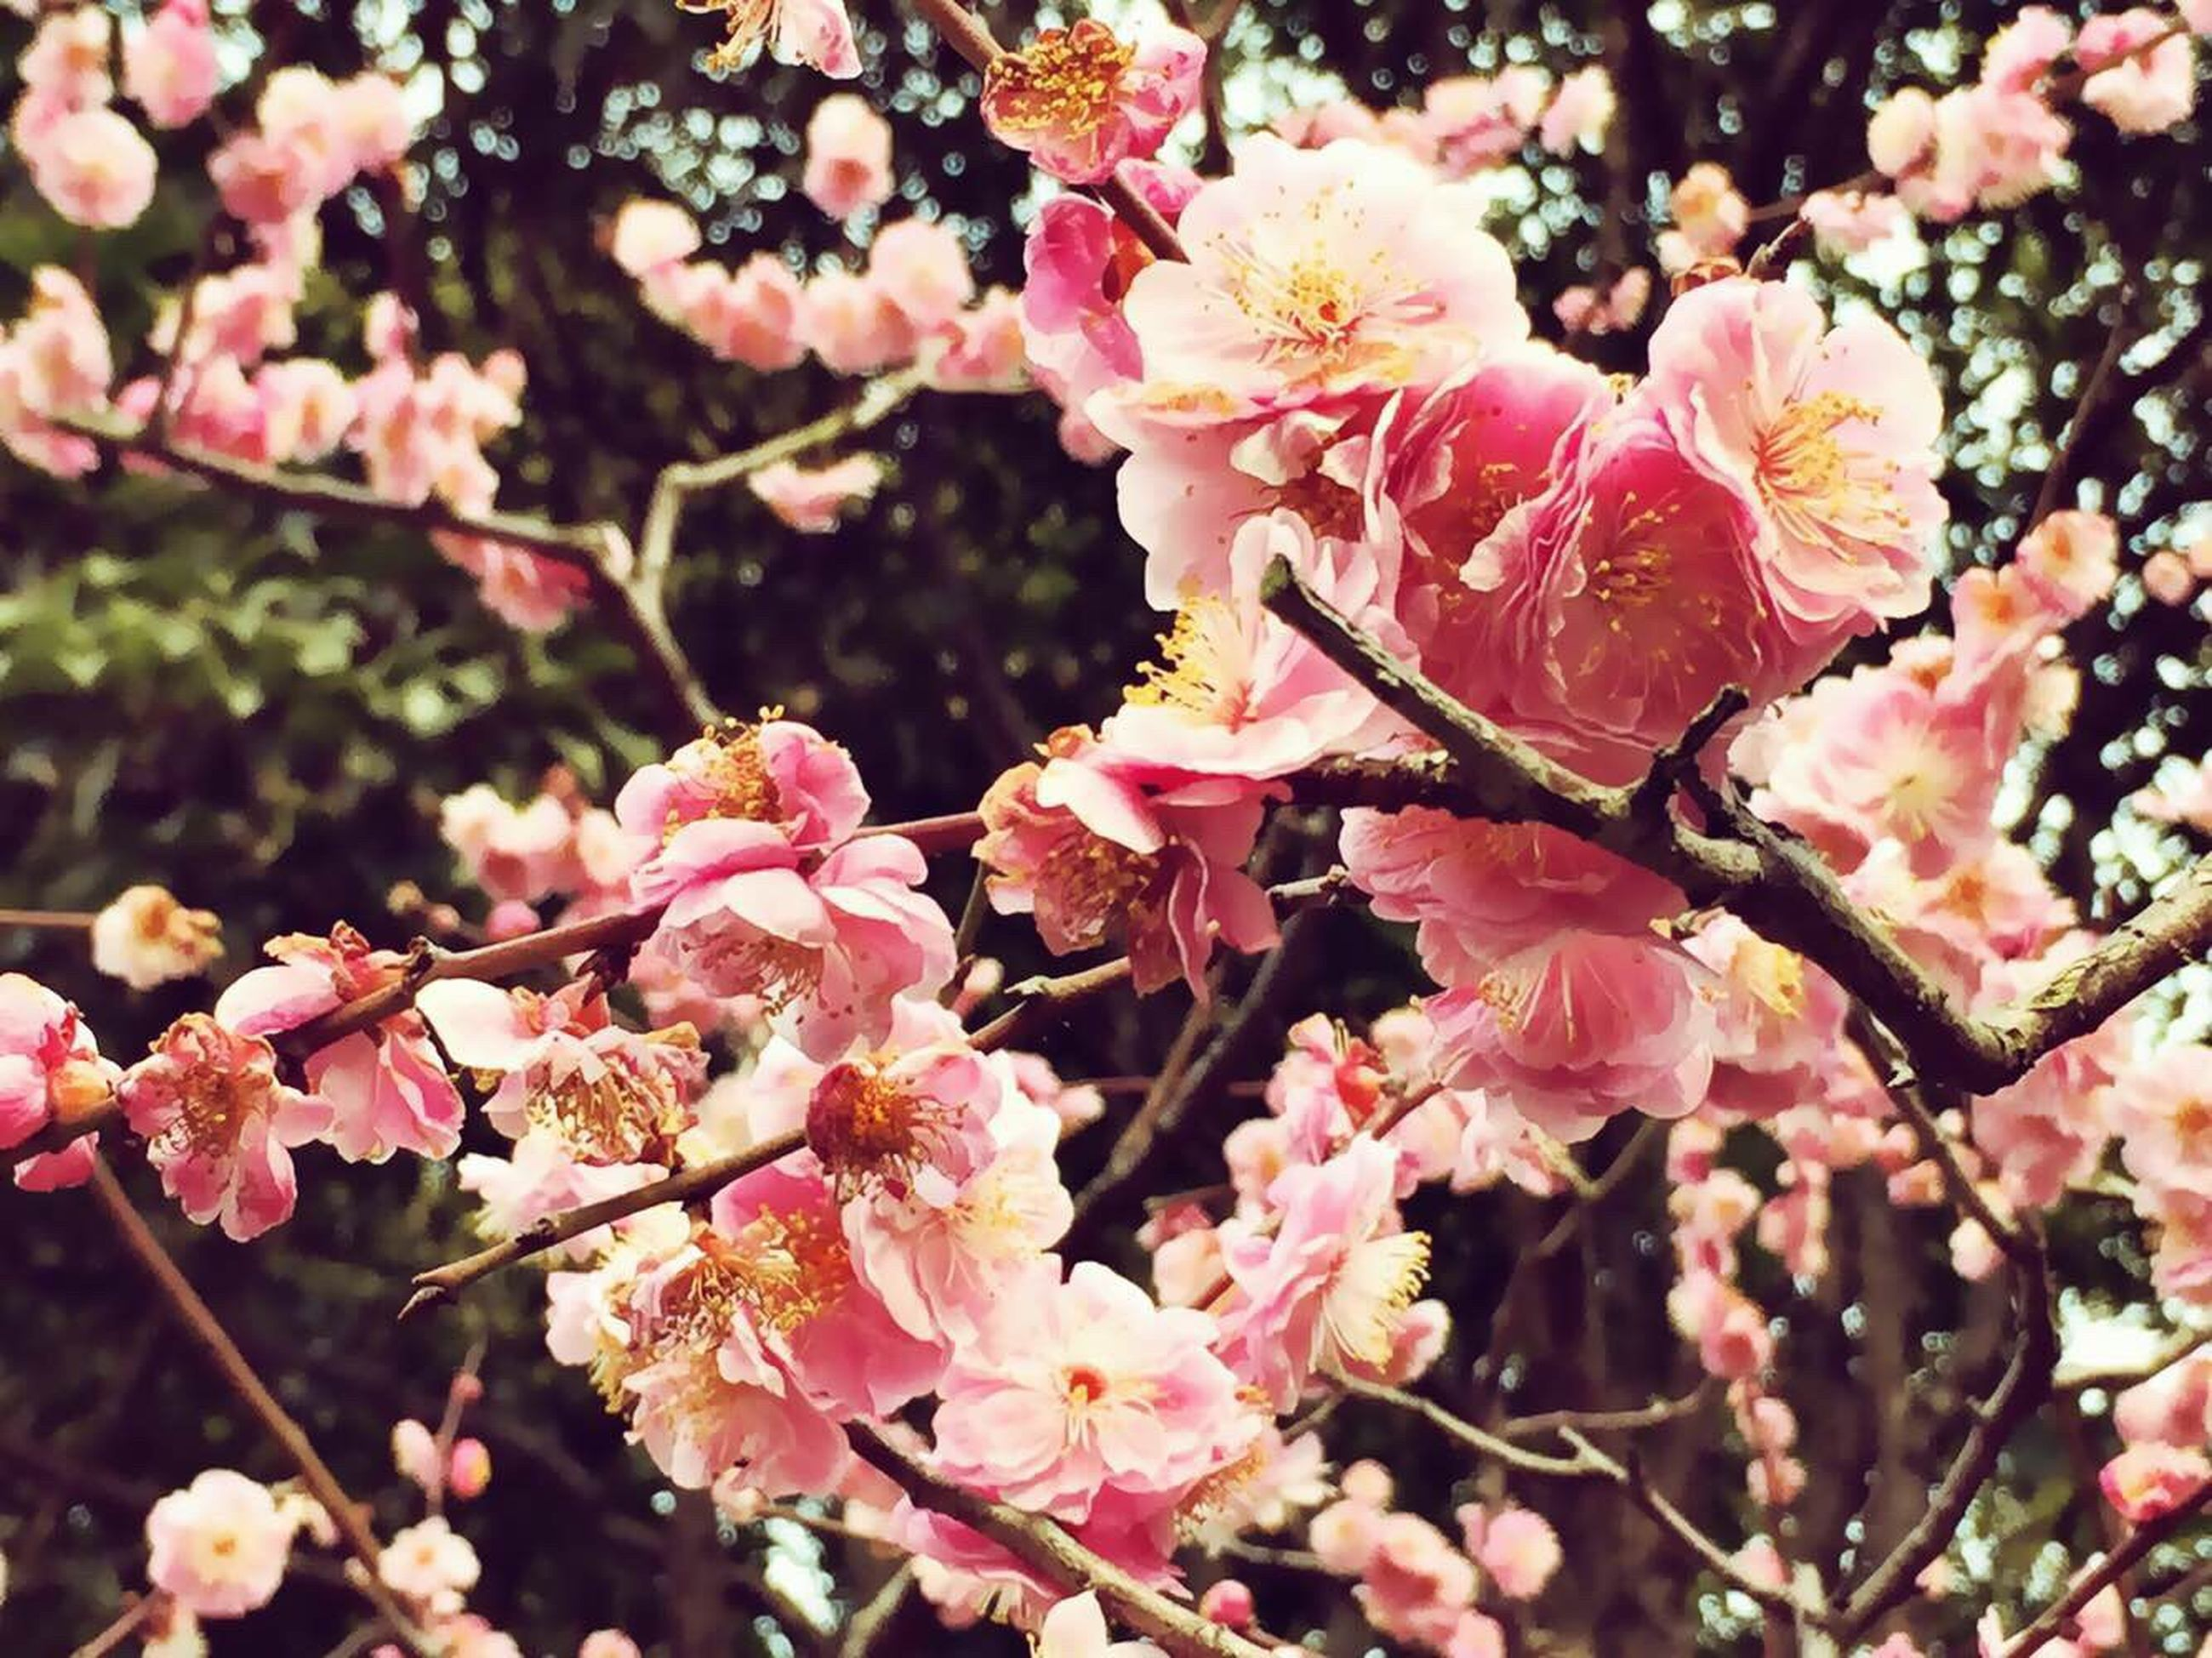 flower, freshness, growth, branch, pink color, fragility, beauty in nature, tree, nature, focus on foreground, petal, close-up, blossom, cherry tree, cherry blossom, blooming, springtime, twig, in bloom, outdoors